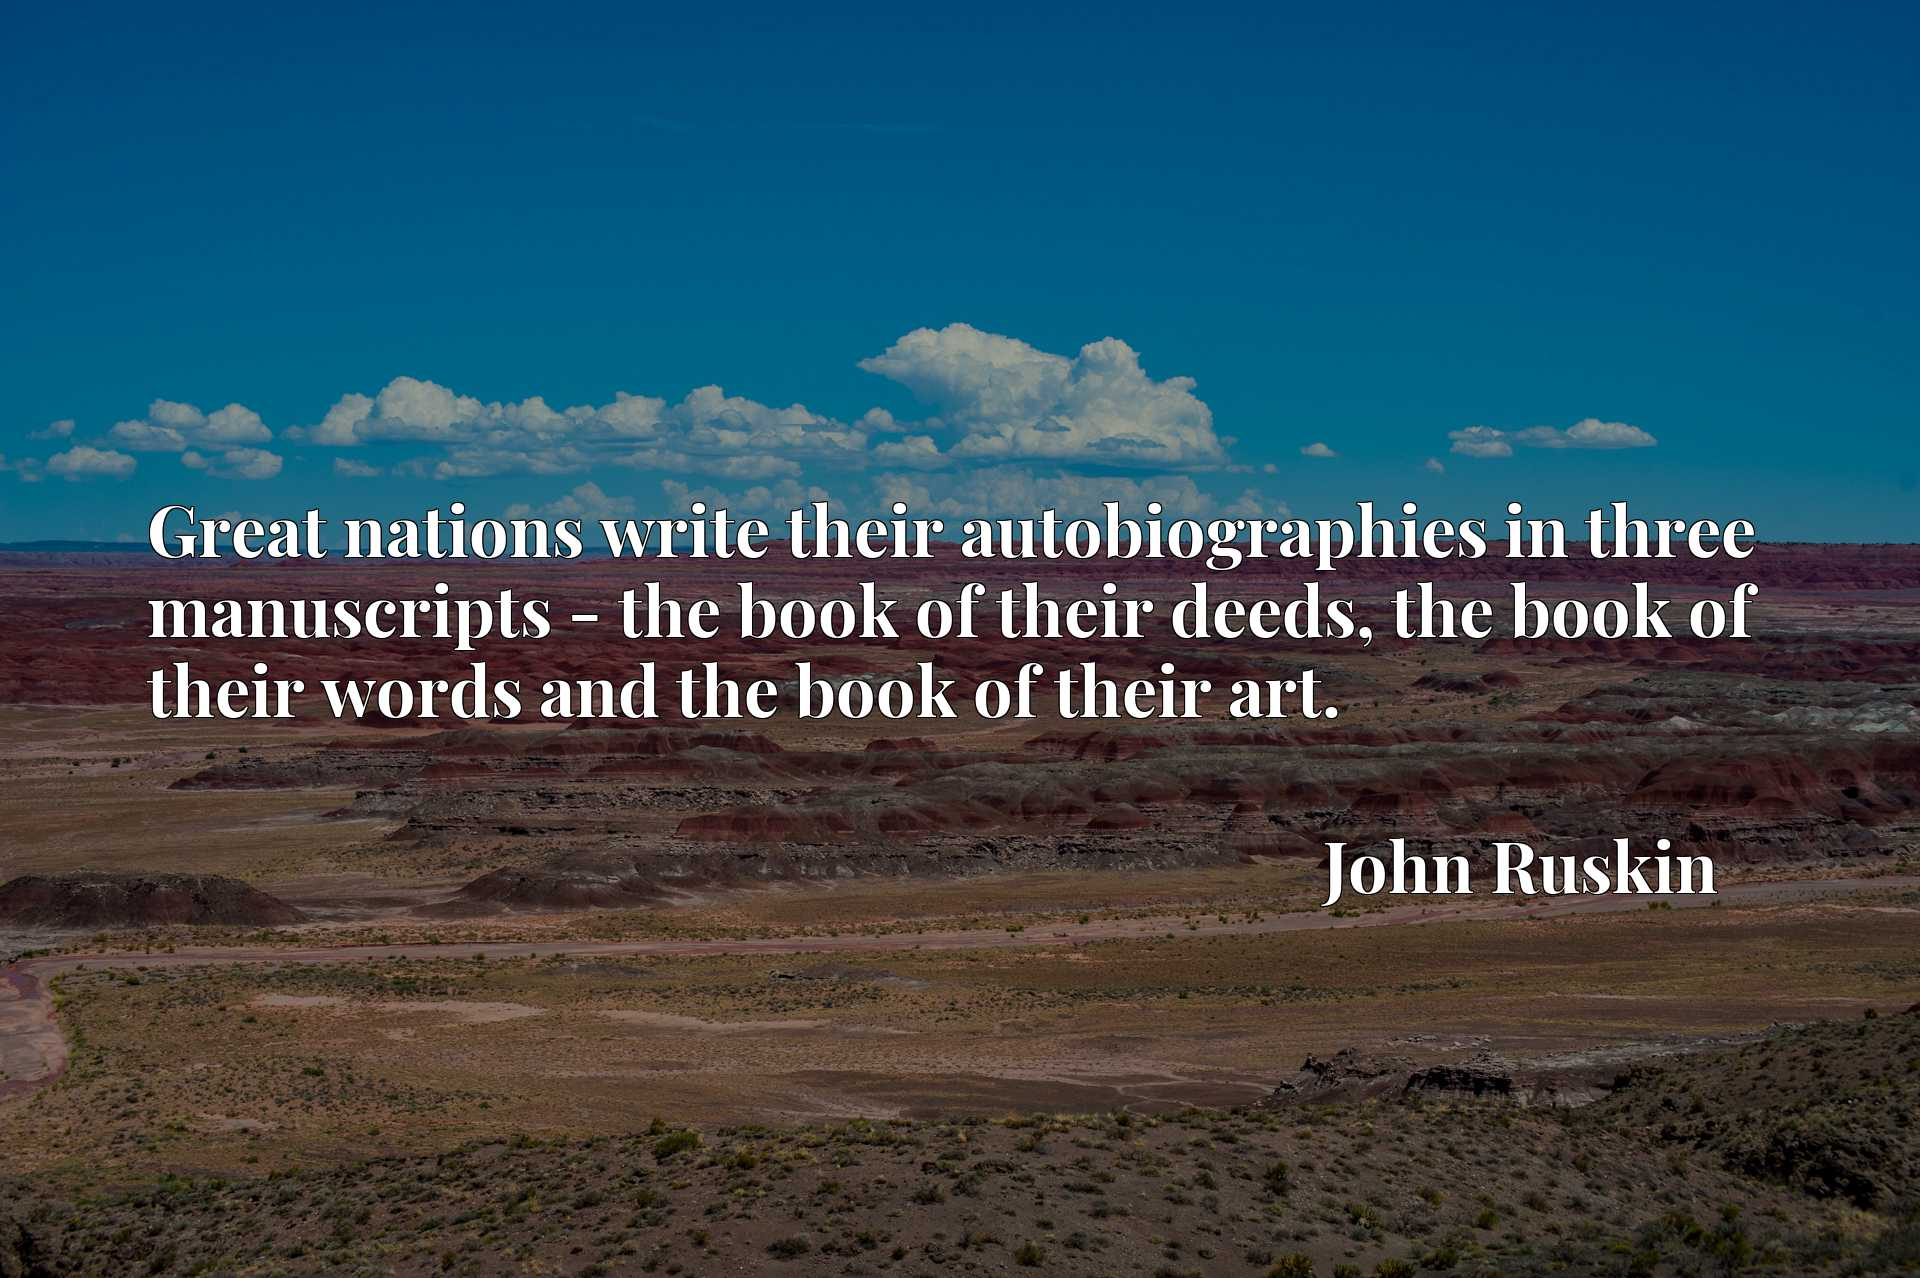 Great nations write their autobiographies in three manuscripts - the book of their deeds, the book of their words and the book of their art.